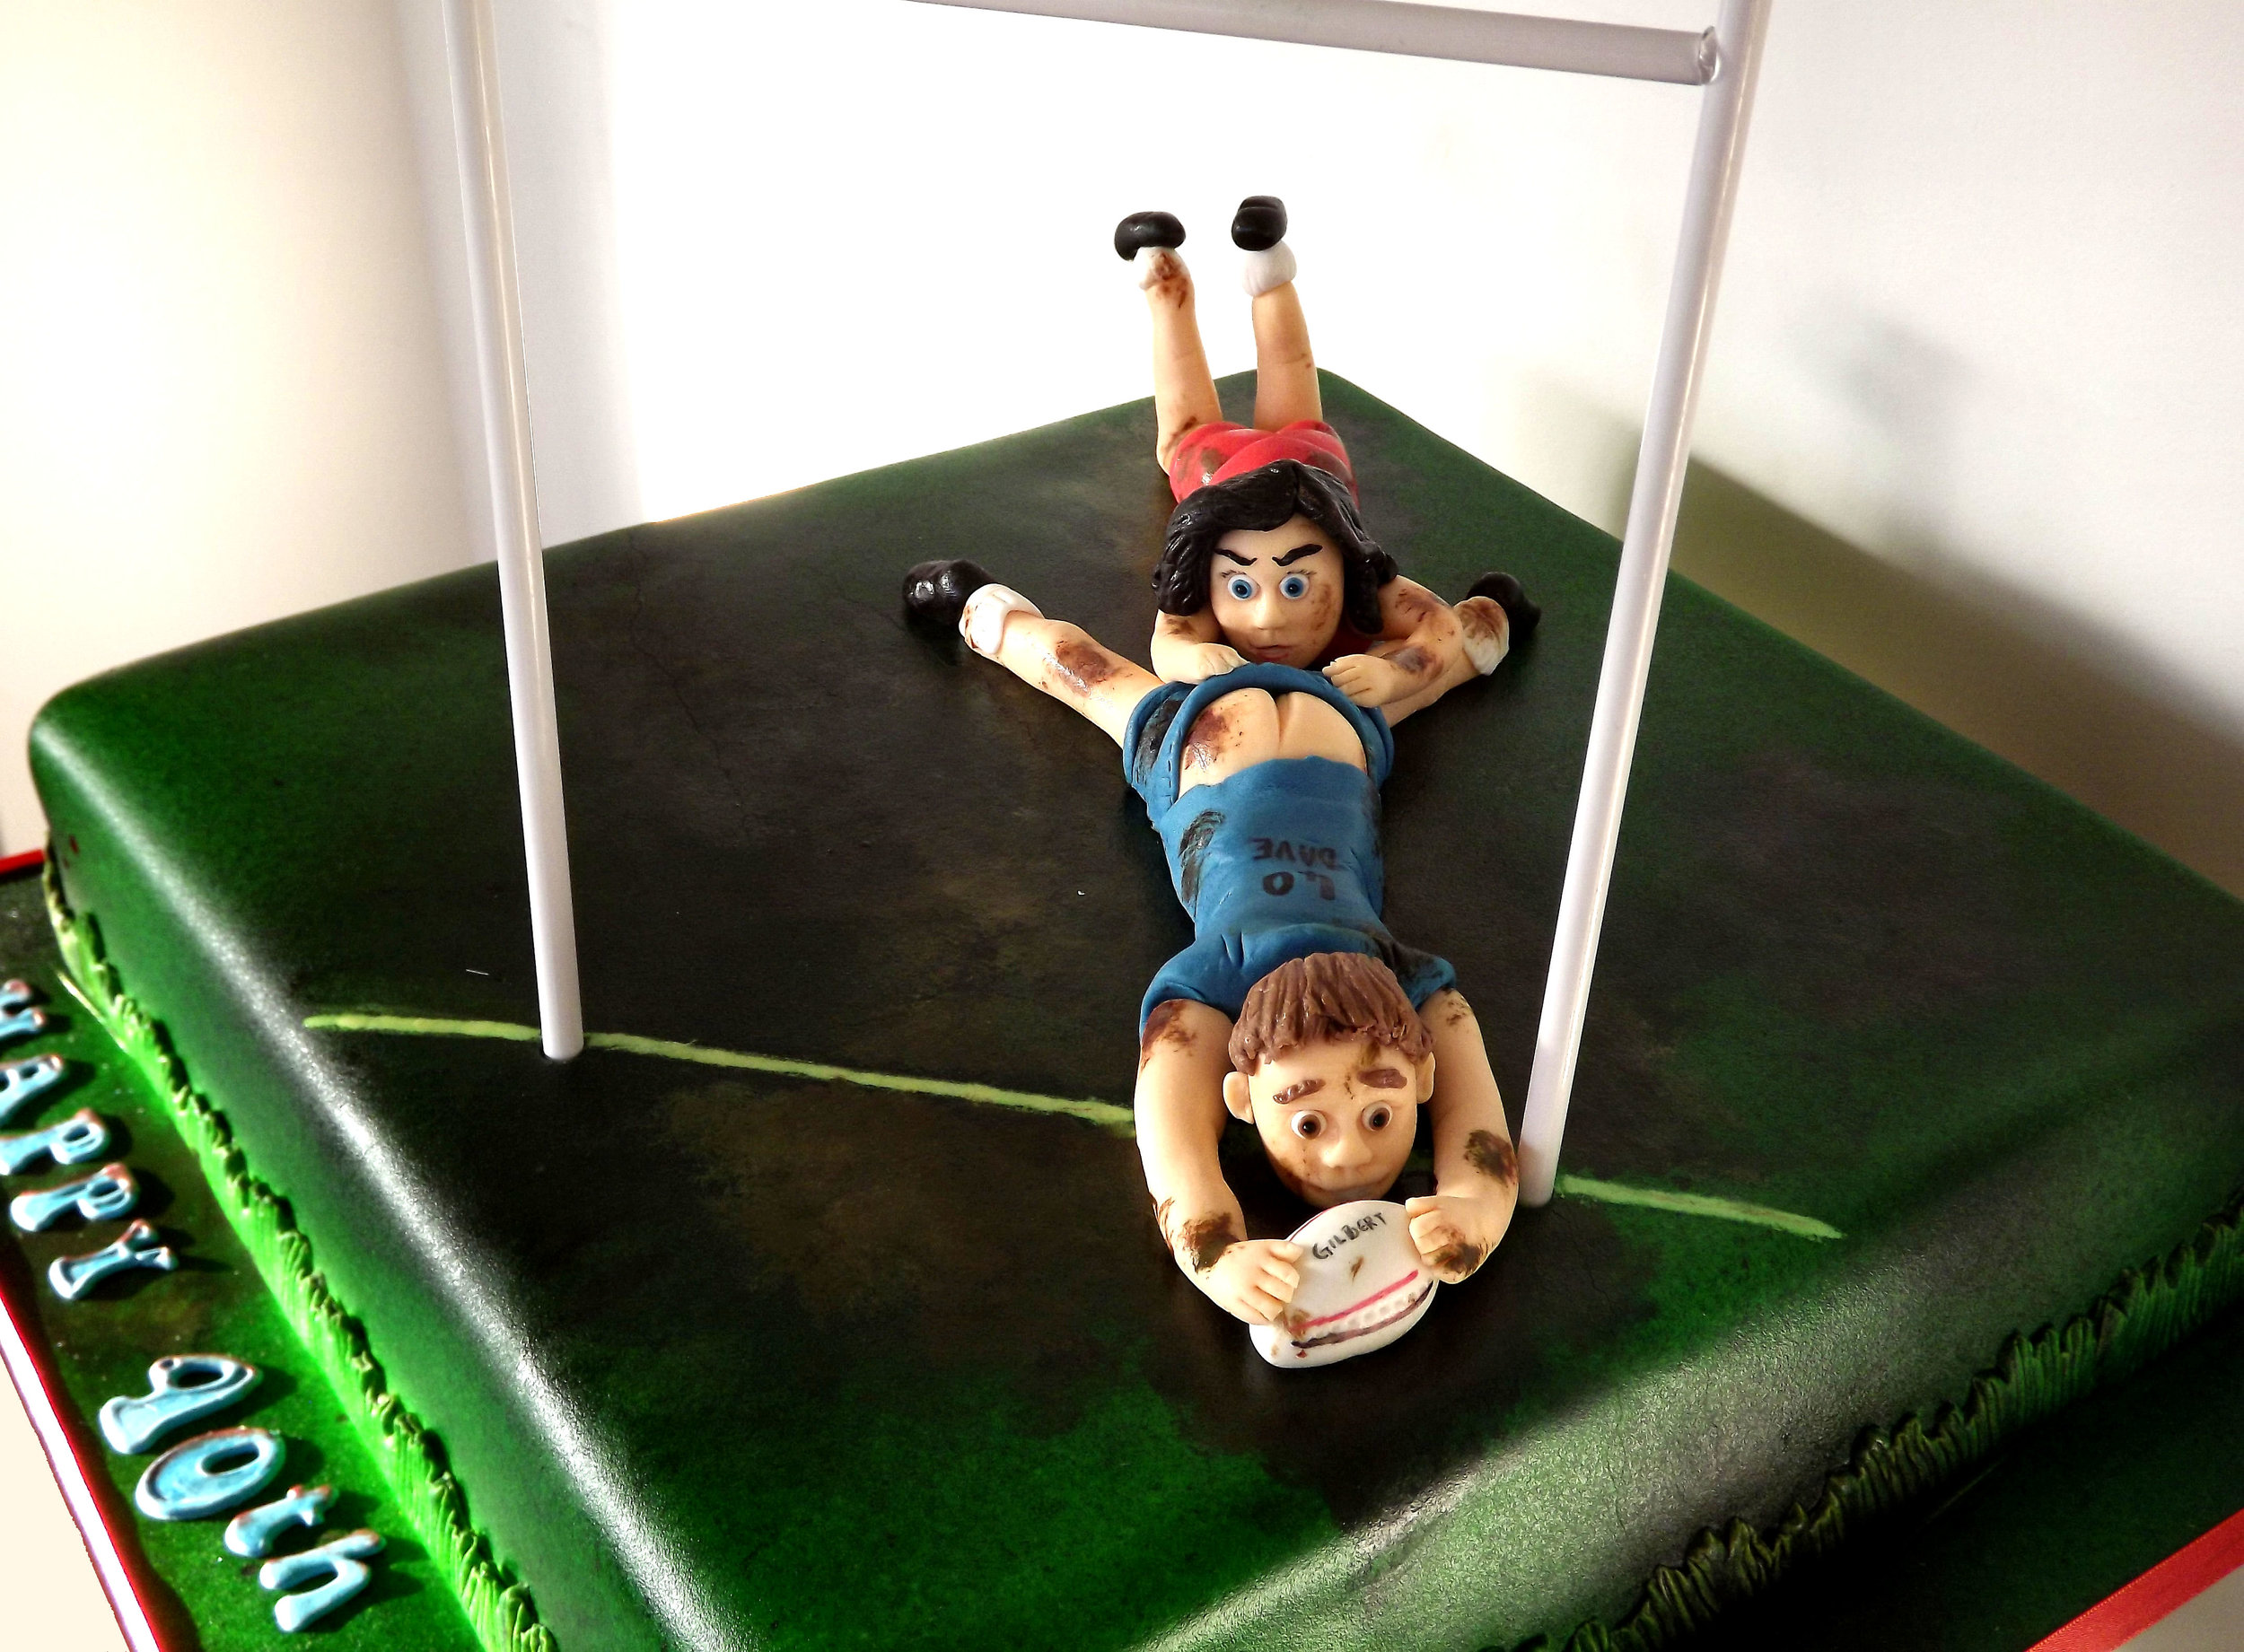 rugby player cake 2.jpg